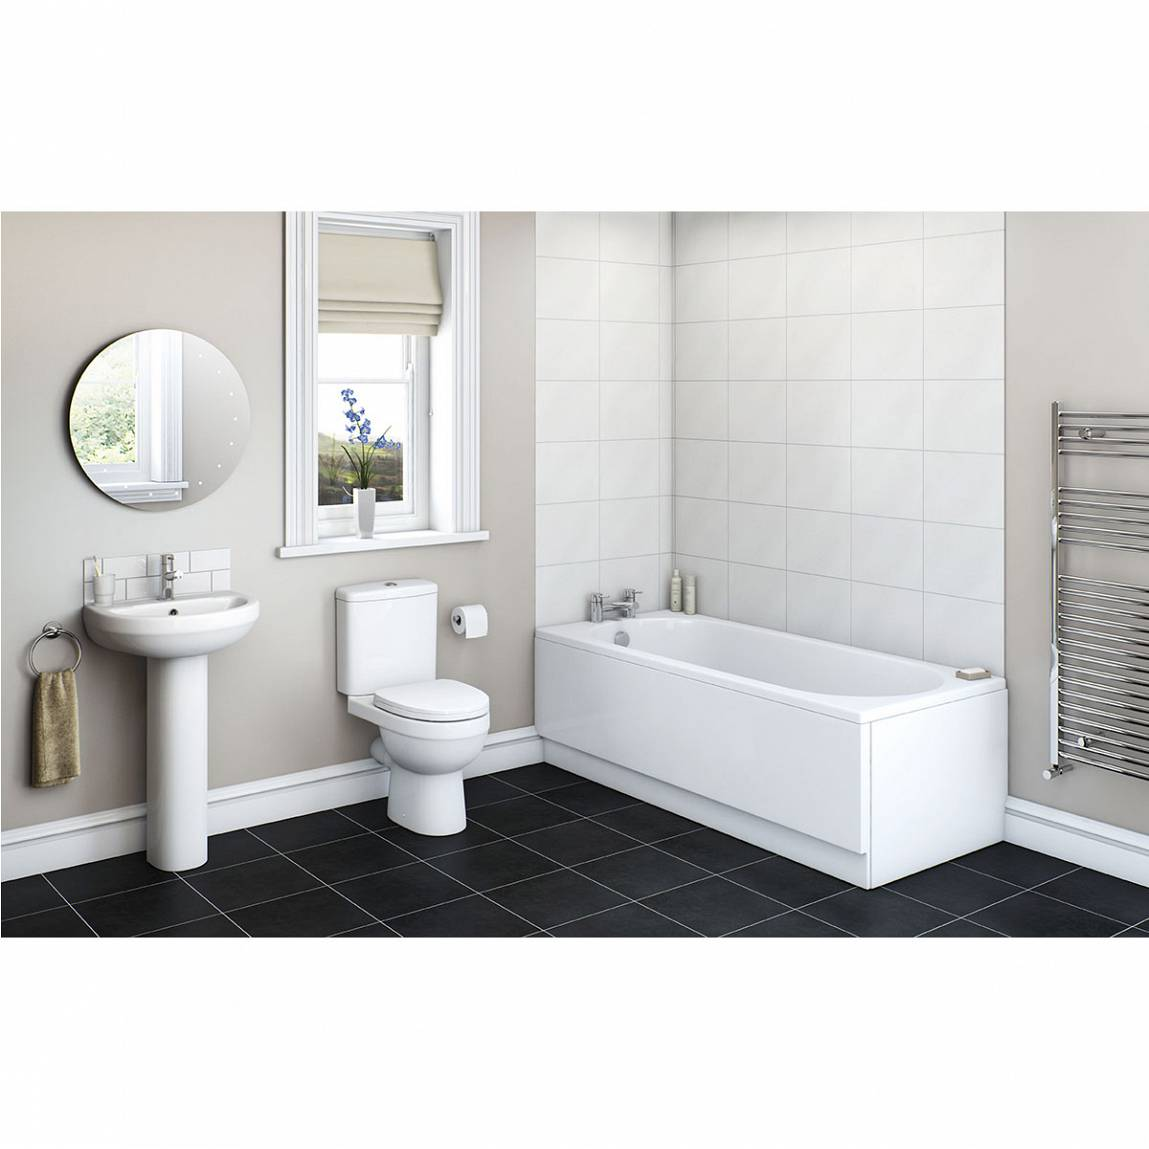 Image of Energy Bathroom Set with Richmond 1500 x 700 Bath Suite